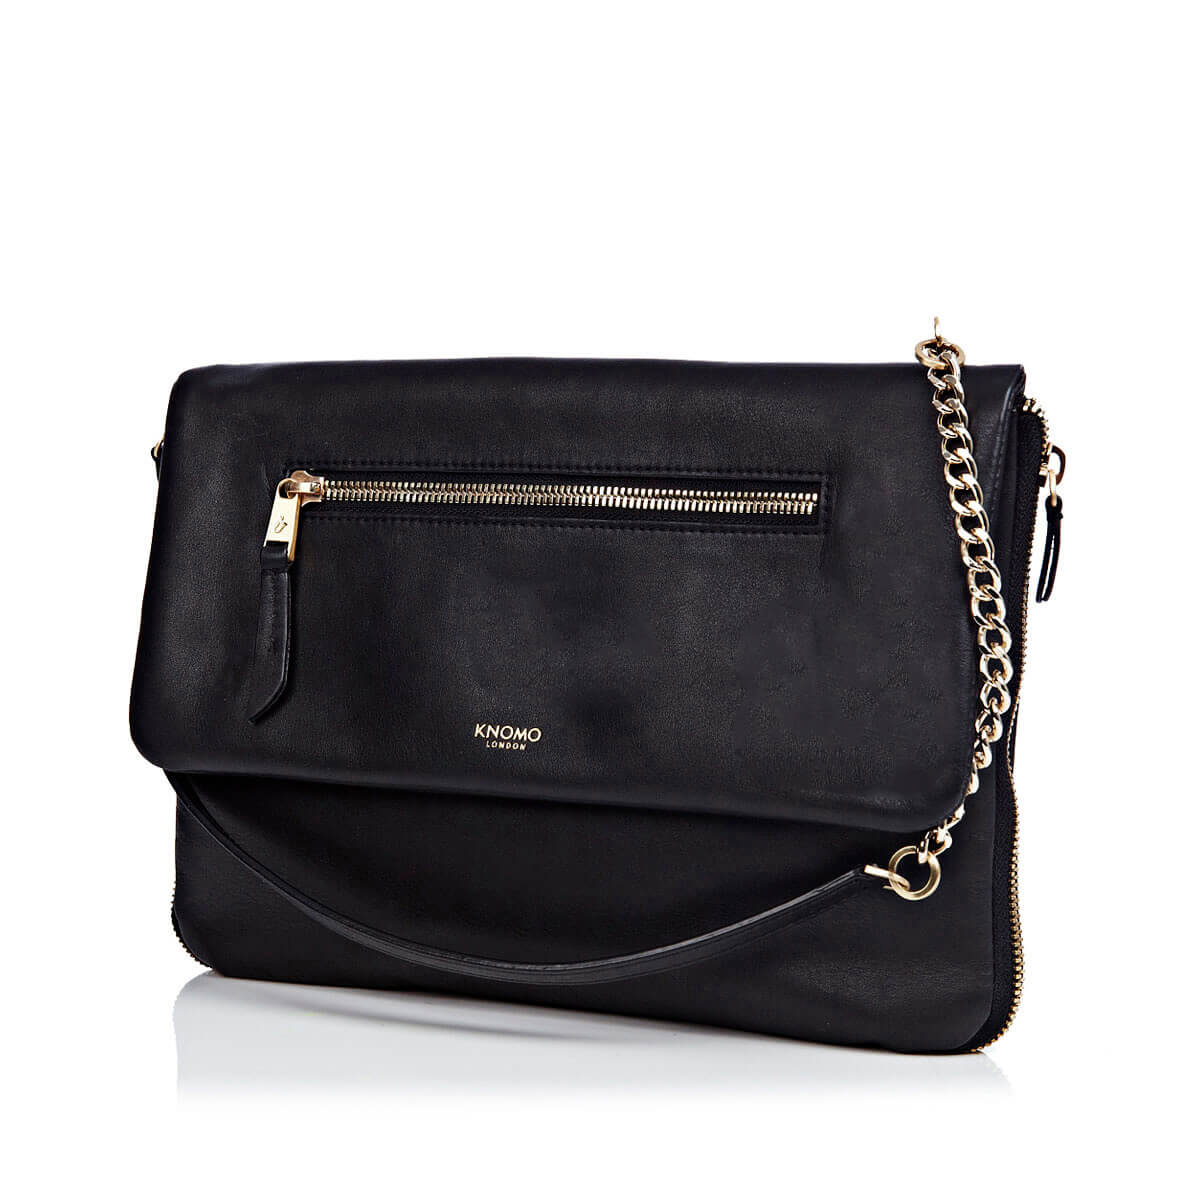 "Leather Elektronista Leather Cross-Body Clutch Bag - 10"" -  Black 